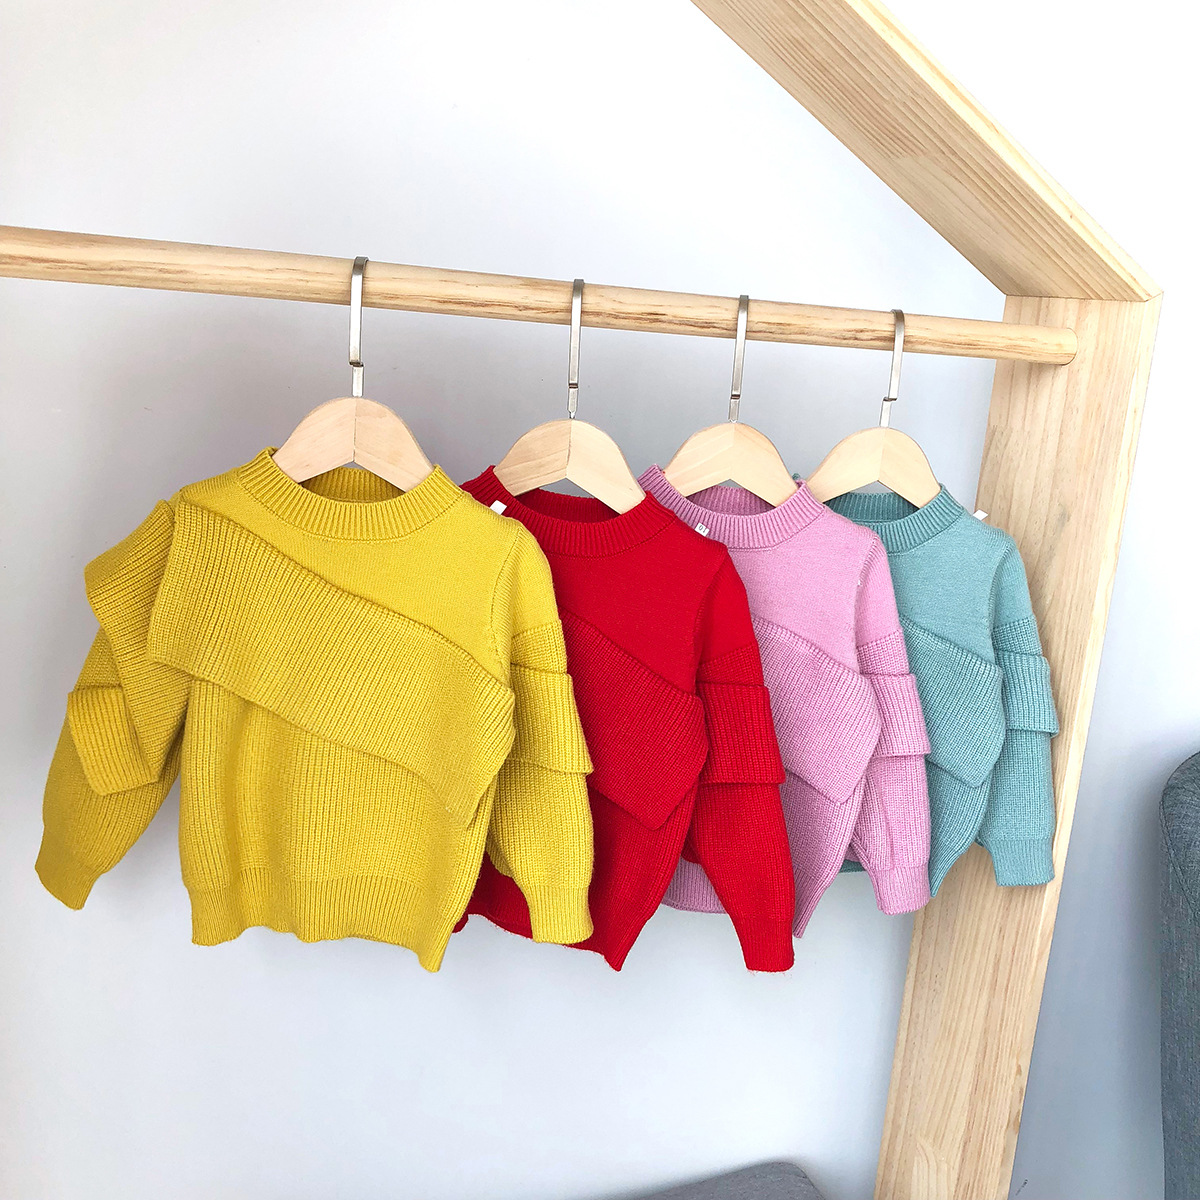 2018 Autumn New Style Kids' Sweater Pullover Korean-style Flounced Sweet GIRL'S Sweater Baby Sweater Bx6002